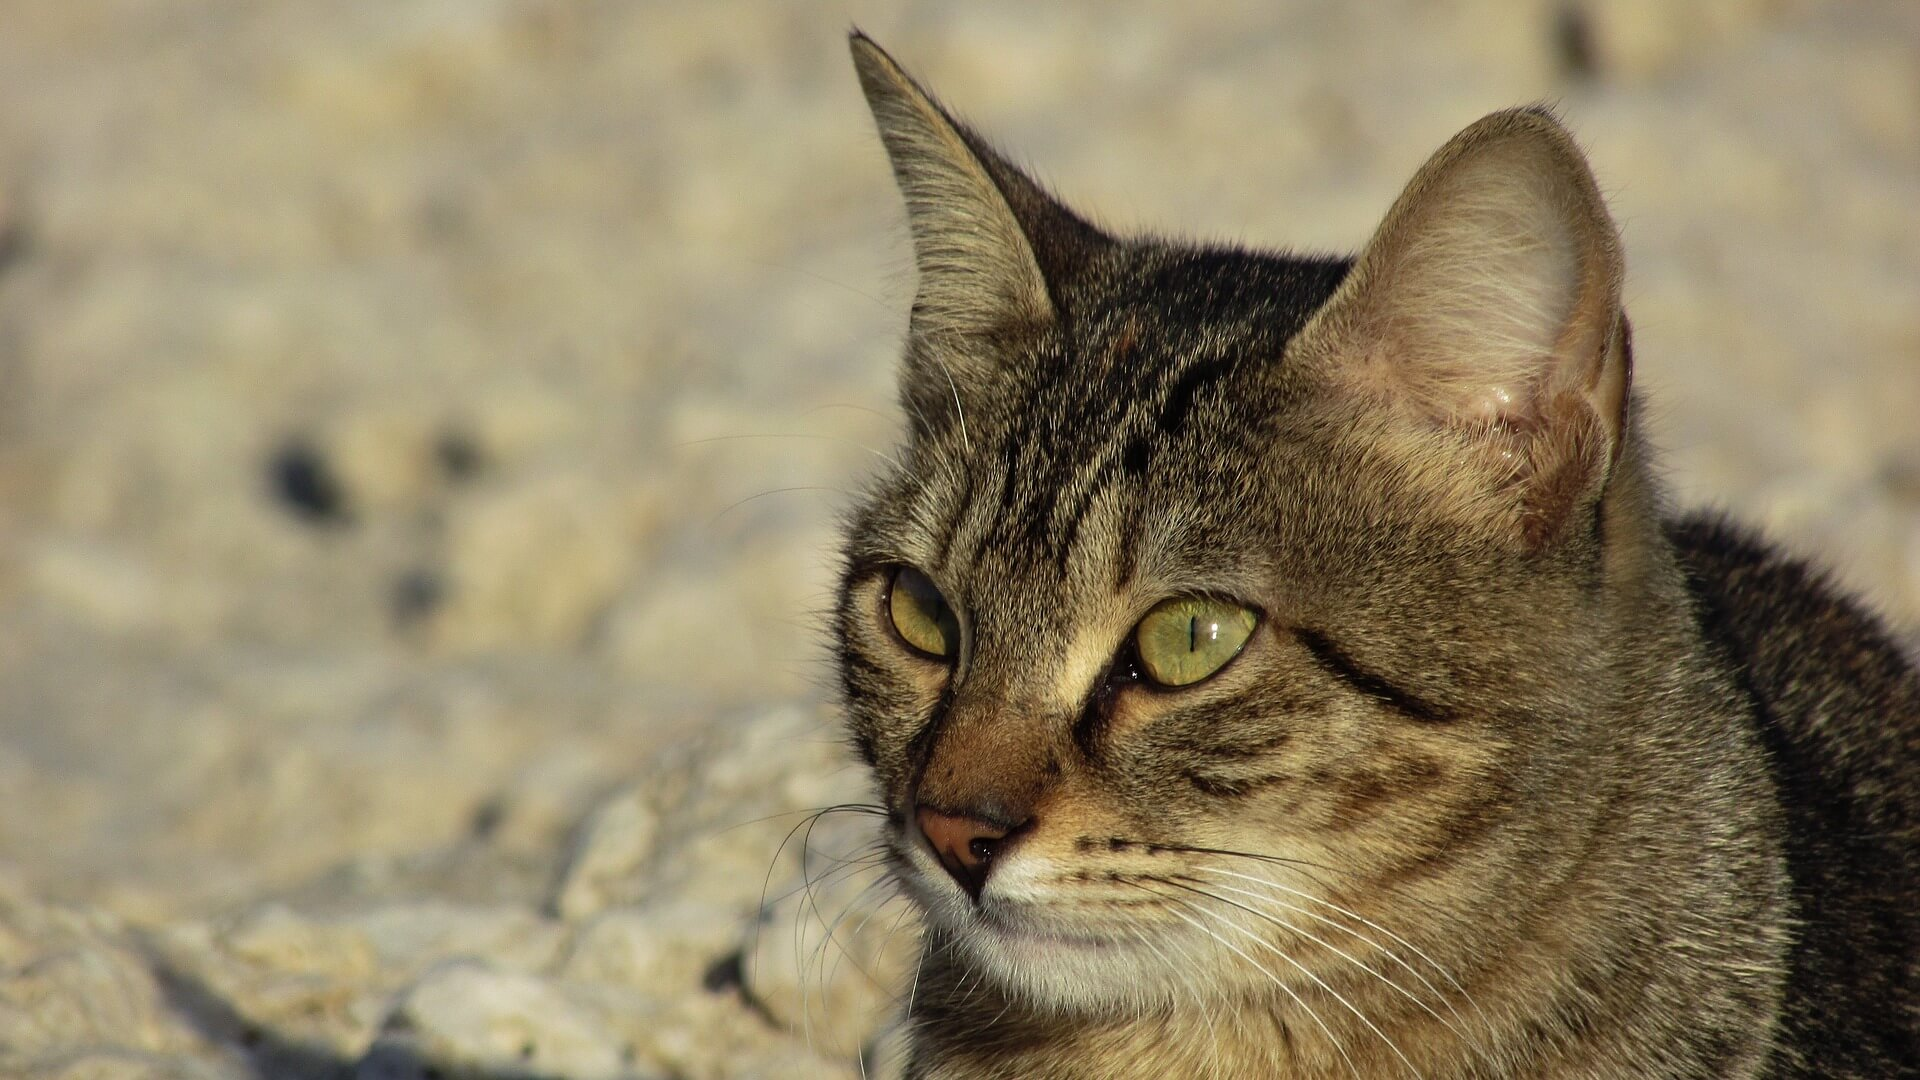 https://beckielindsey.com/2017/09/25/lessons-jesus-taught-me-through-a-stray-cat/